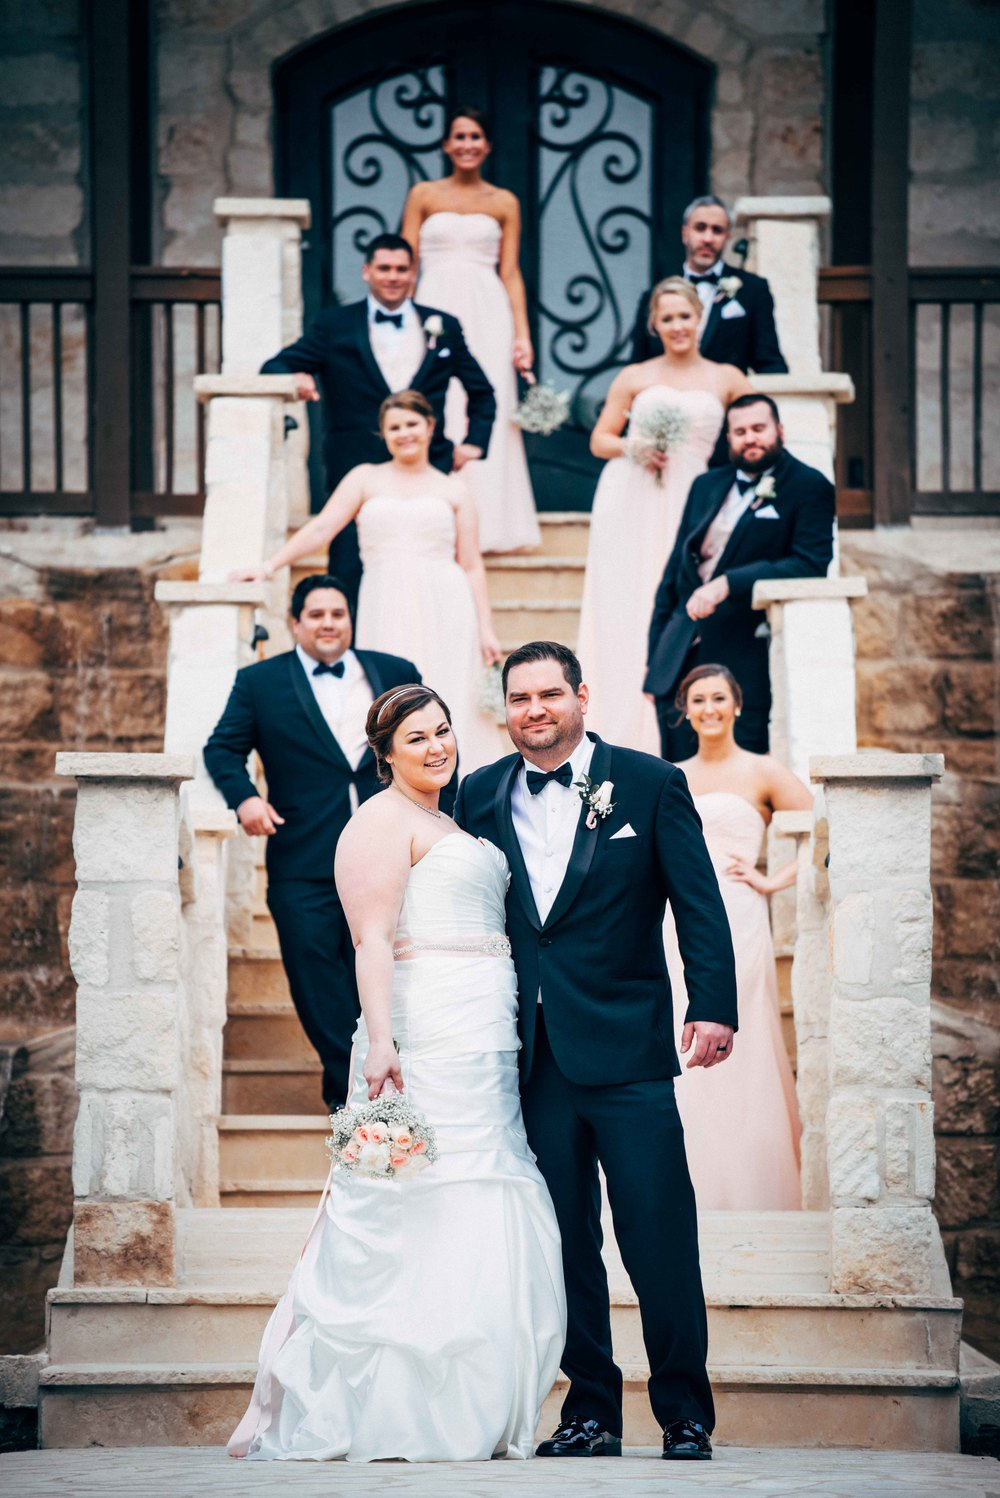 Dallas Wedding - Heritage Springs - Katie and Dustin - Bridal Party